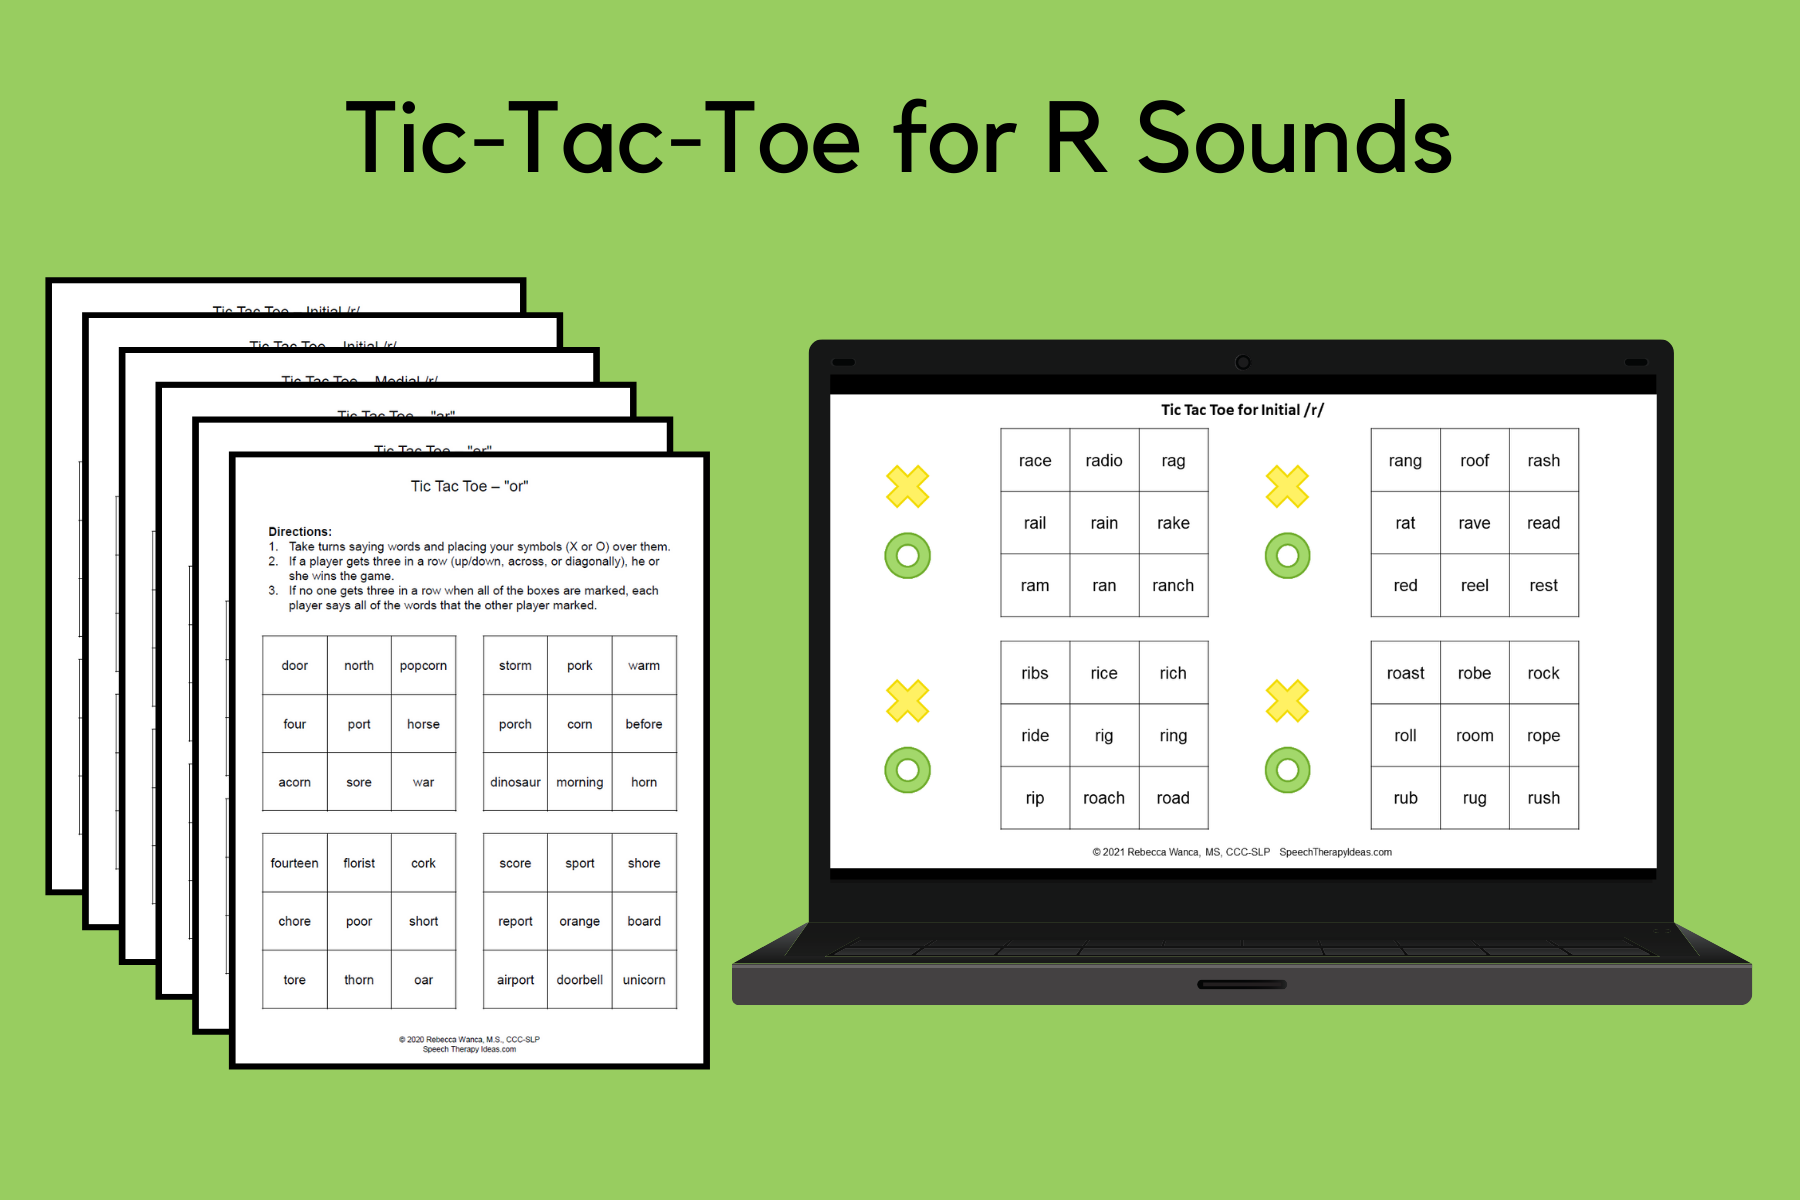 Tic-Tac-Toe Games For R Sounds